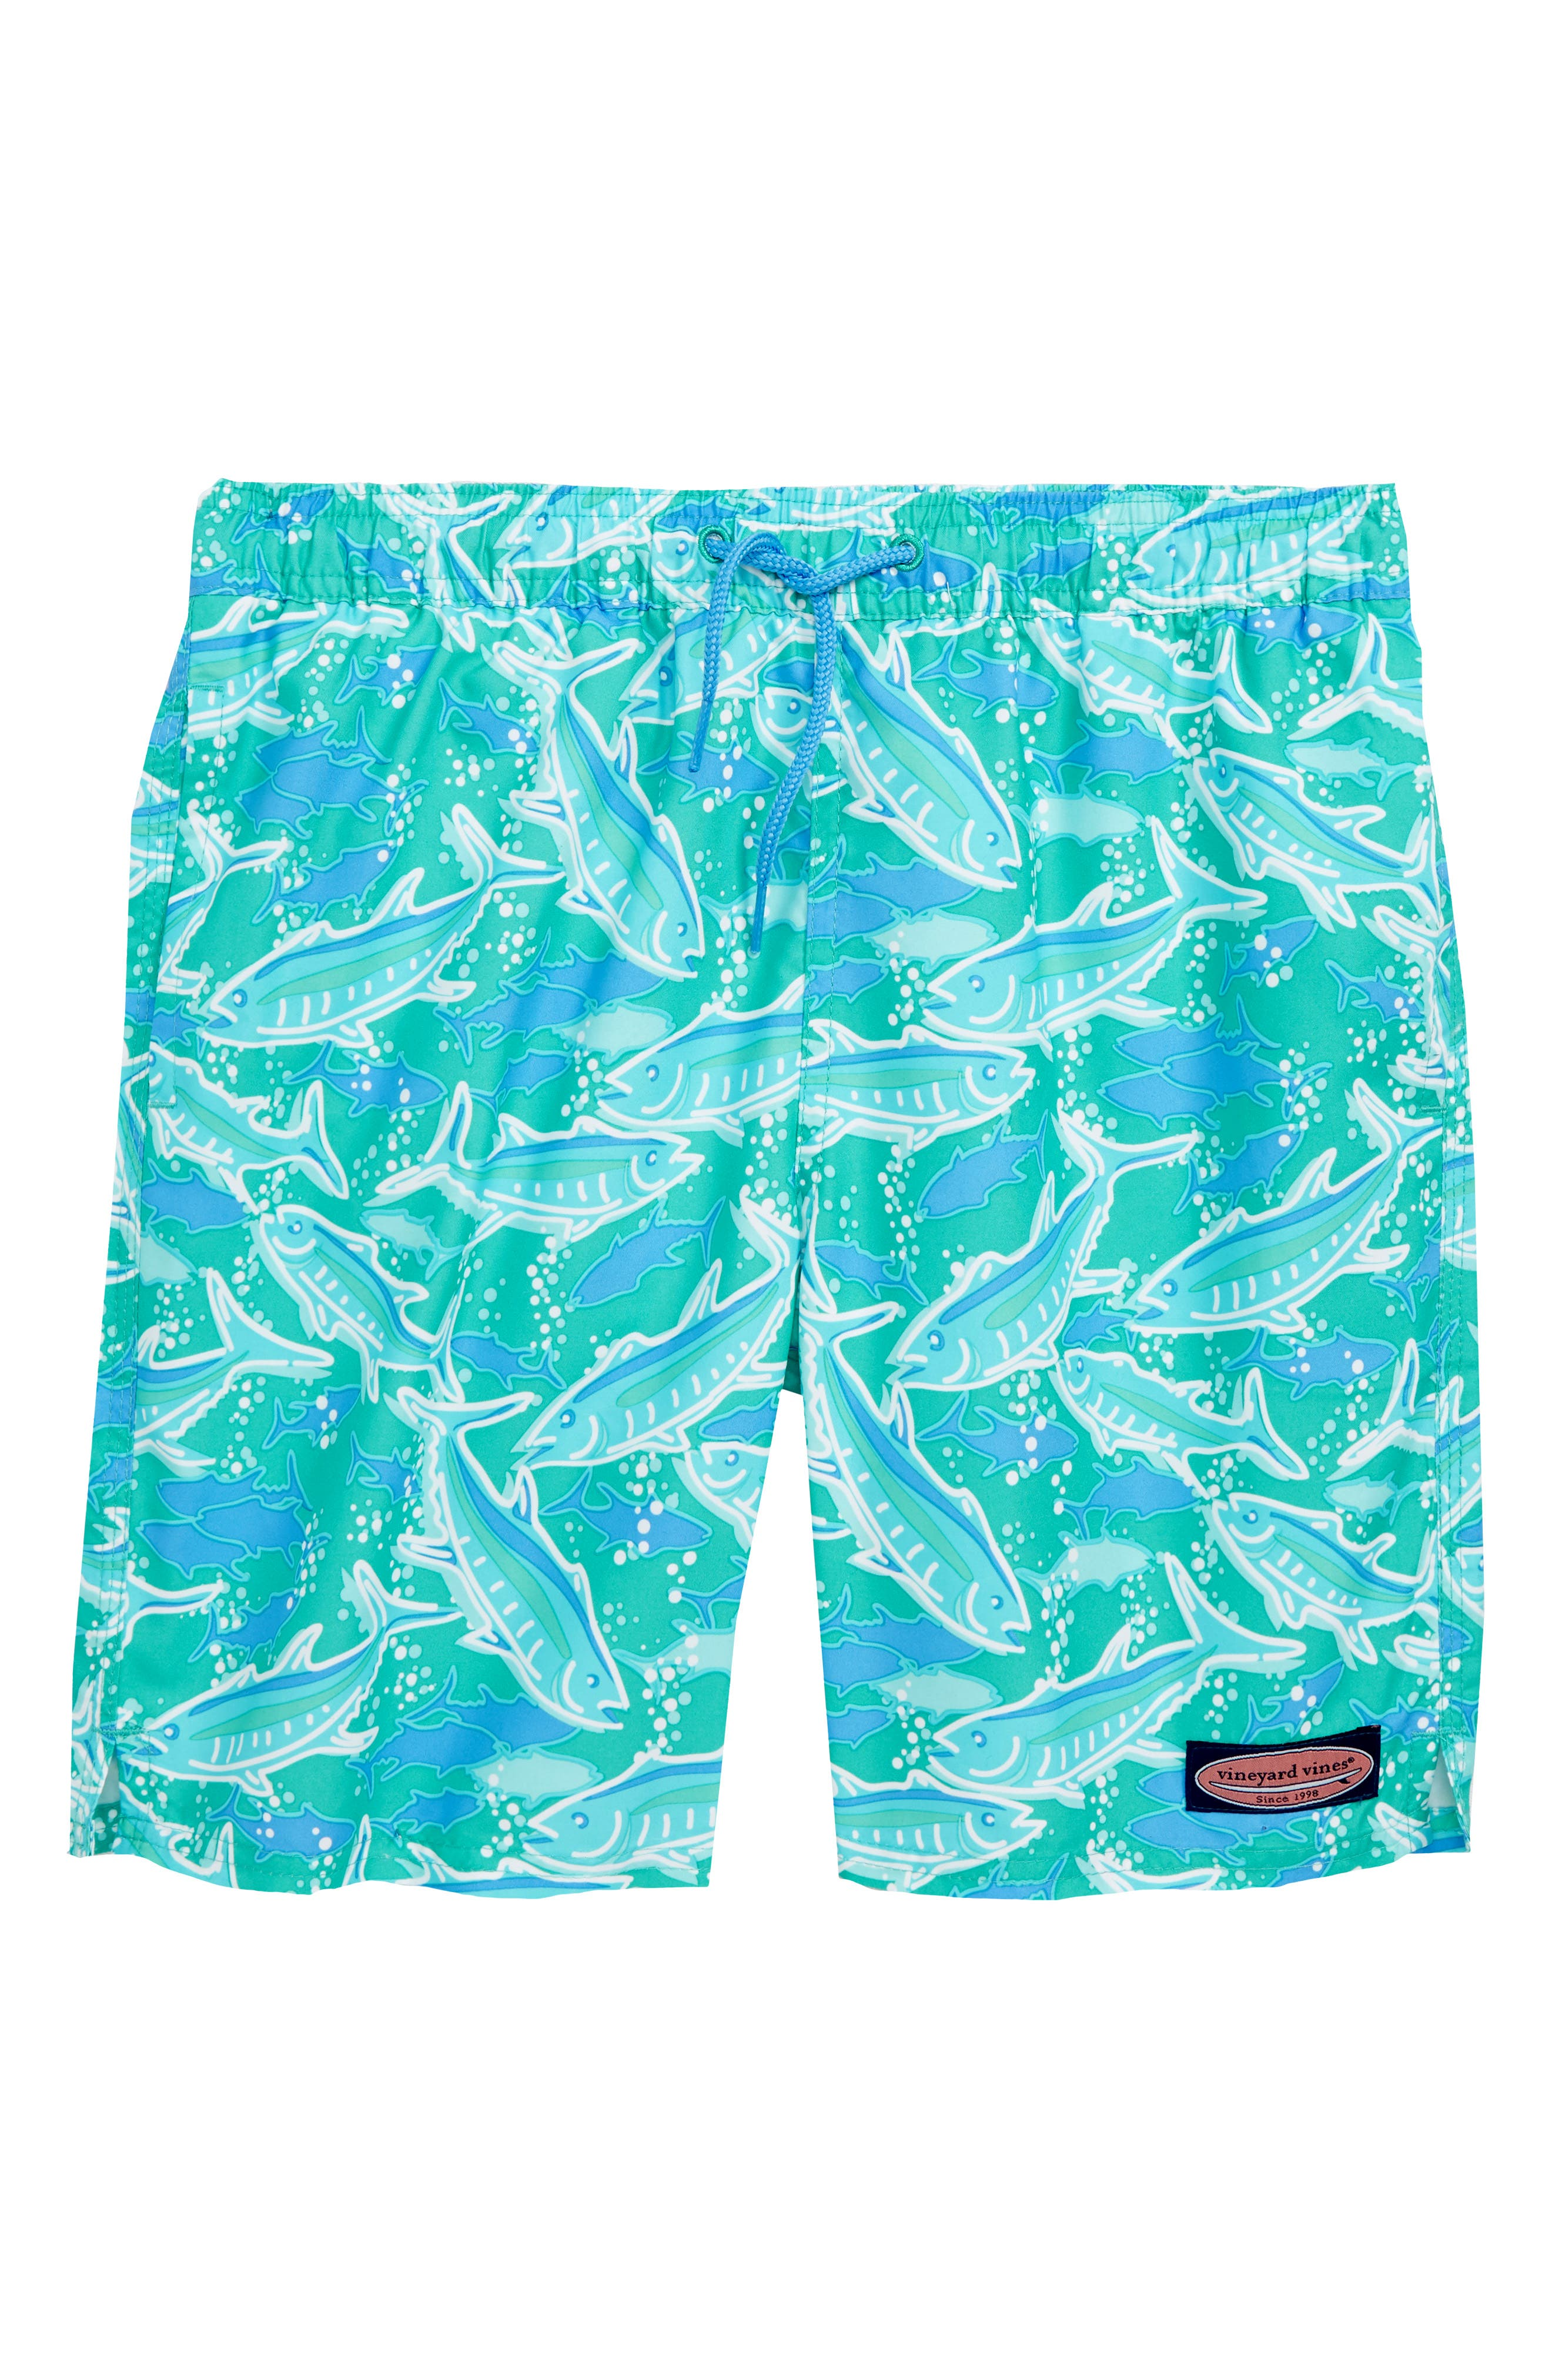 Chappy School of Tuna Swim Trunks,                             Main thumbnail 1, color,                             440